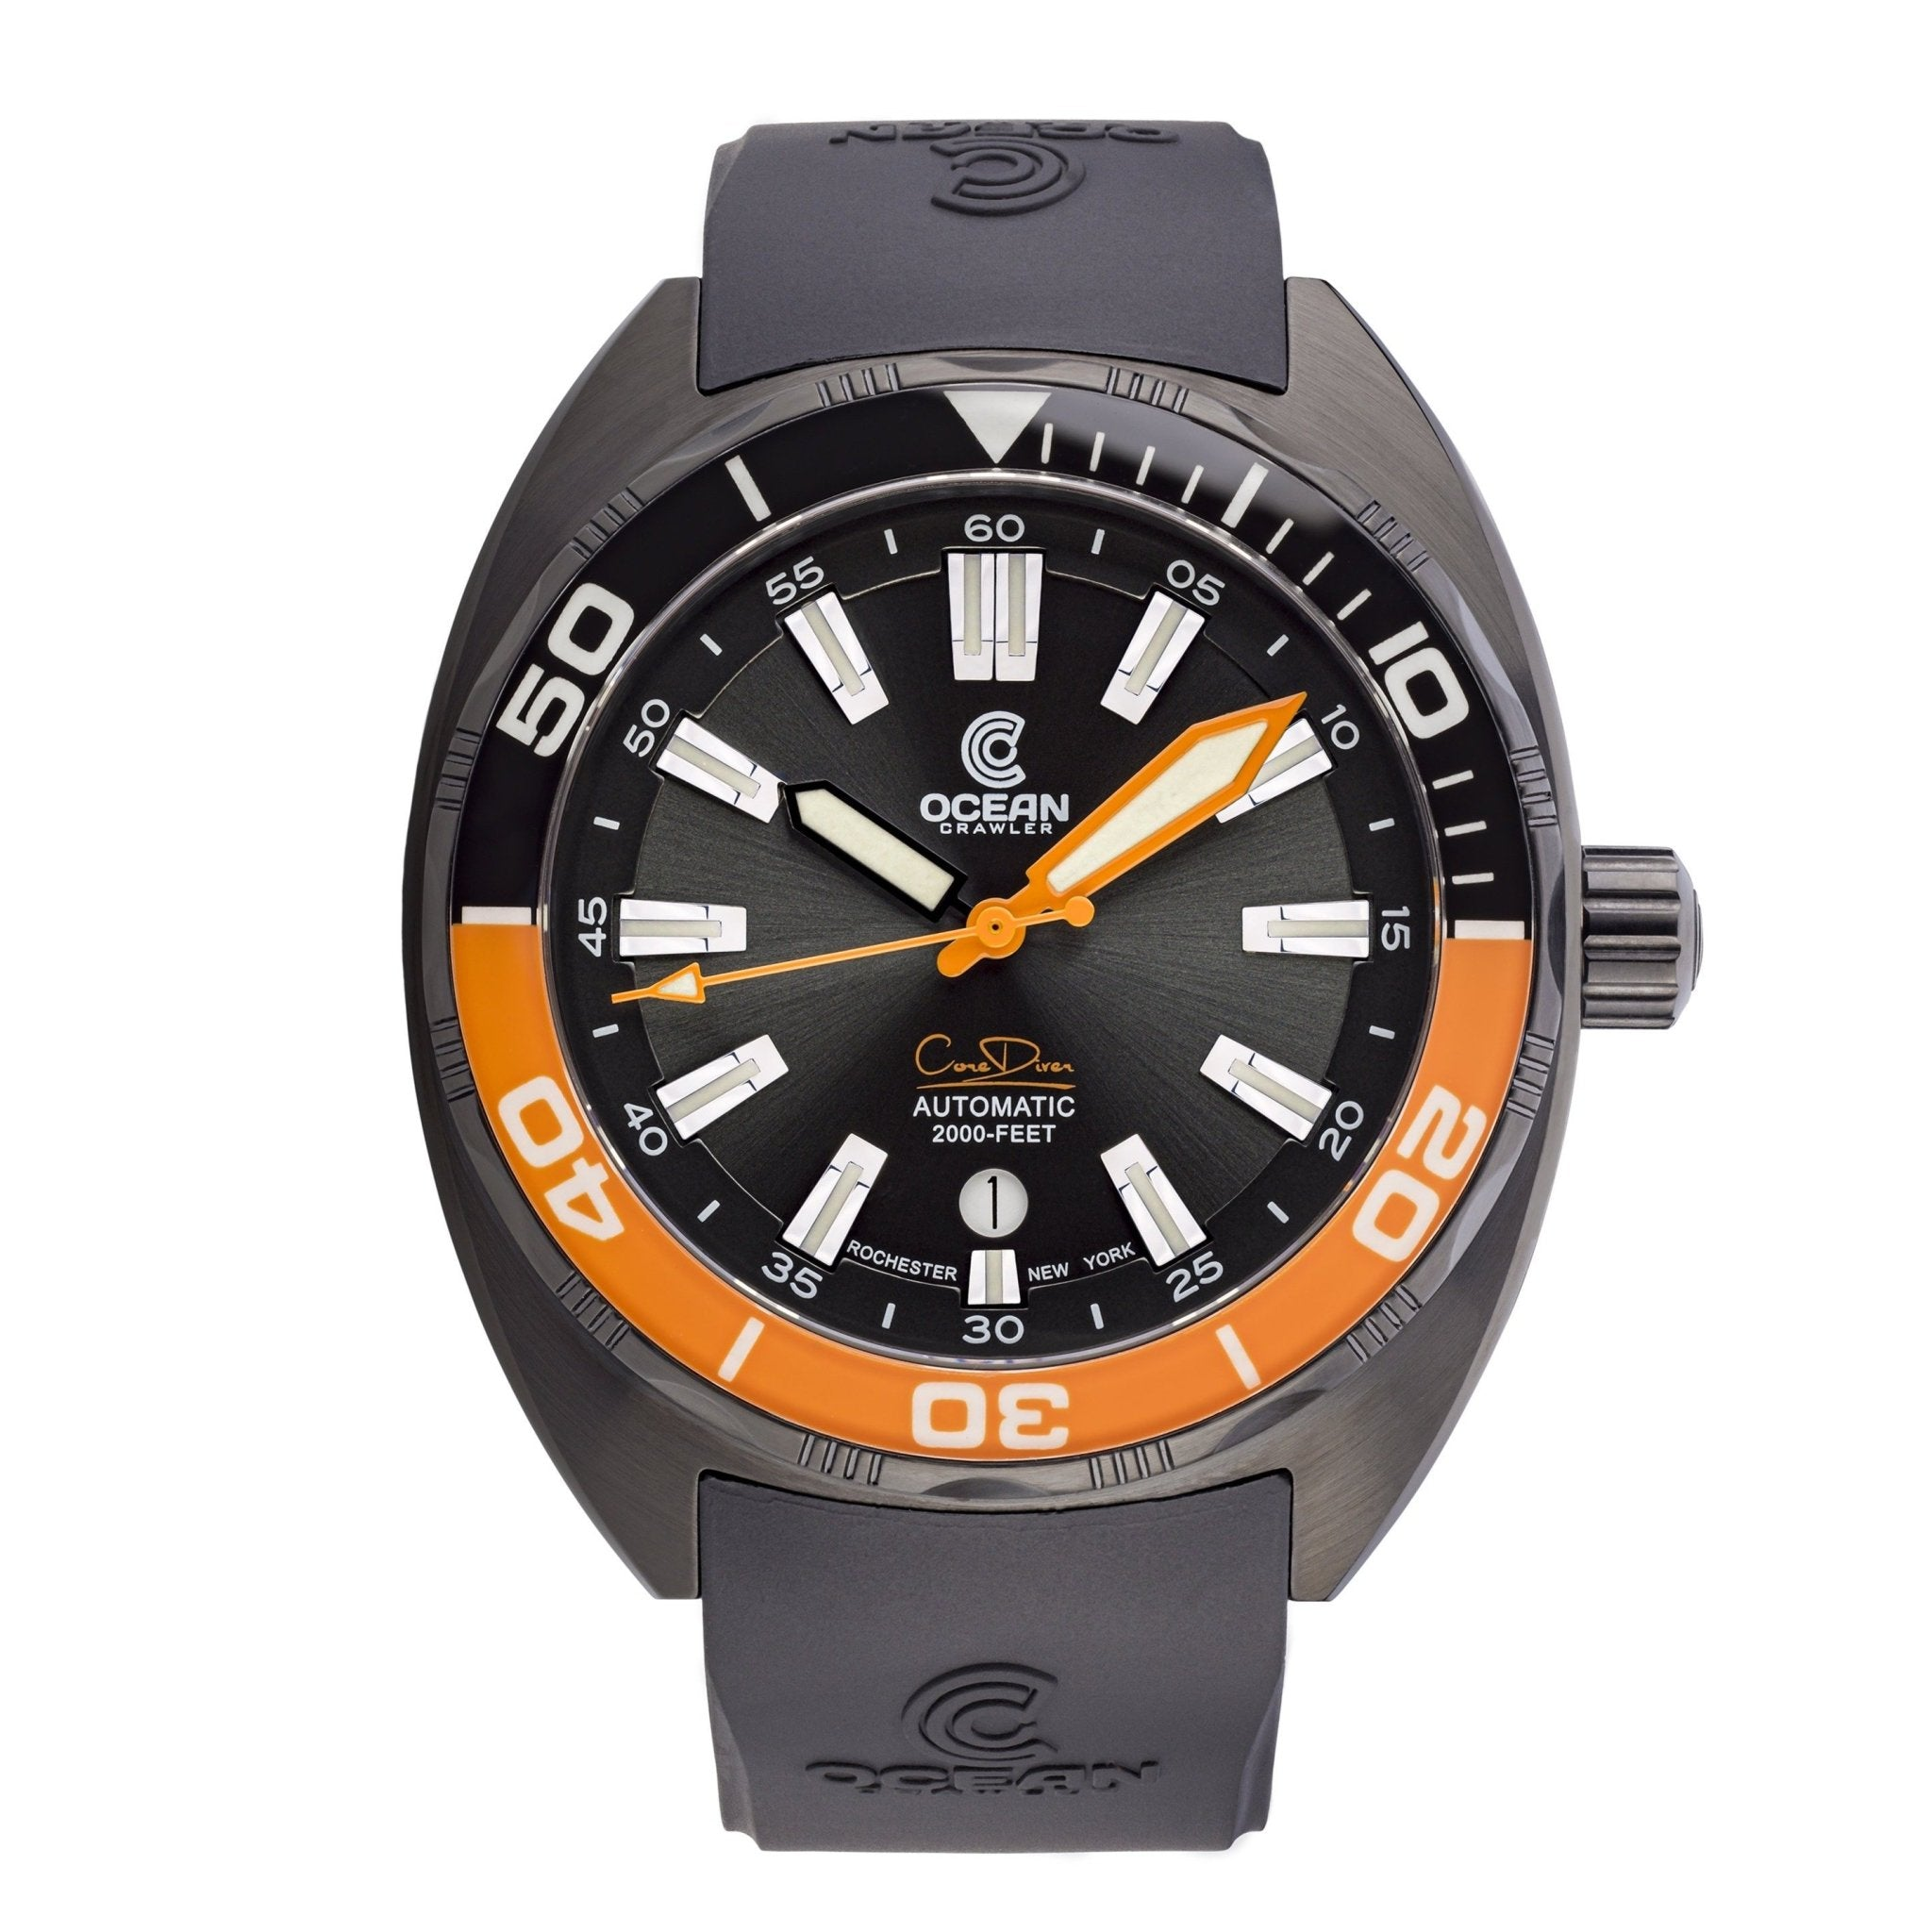 Ocean Crawler Core Diver - Black/Orange DLC - Preorder - Ocean Crawler Watch Co.